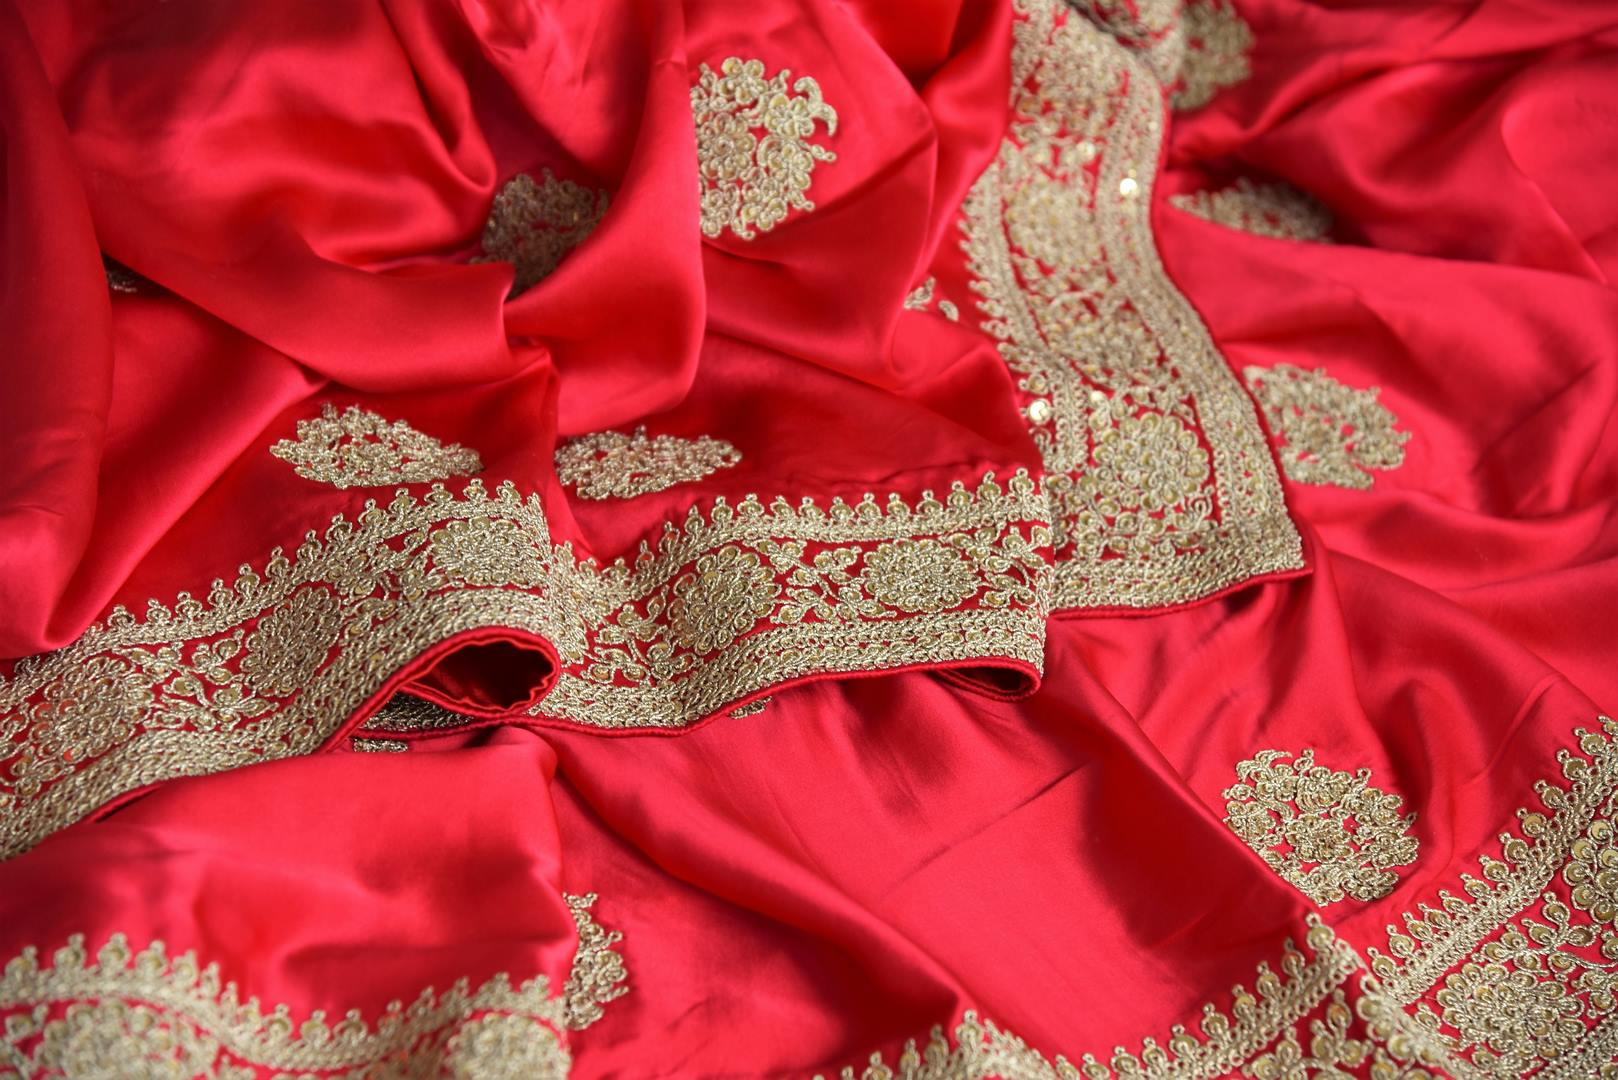 Shop this bridal red crepe silk traditional saree with intricate zardozi work. The signature zari woven blouse enhances the overall look and exudes beauty at par. Shop handloom sarees, designer silk saris, ikkat sarees, online or visit Pure Elegance store in USA. -details